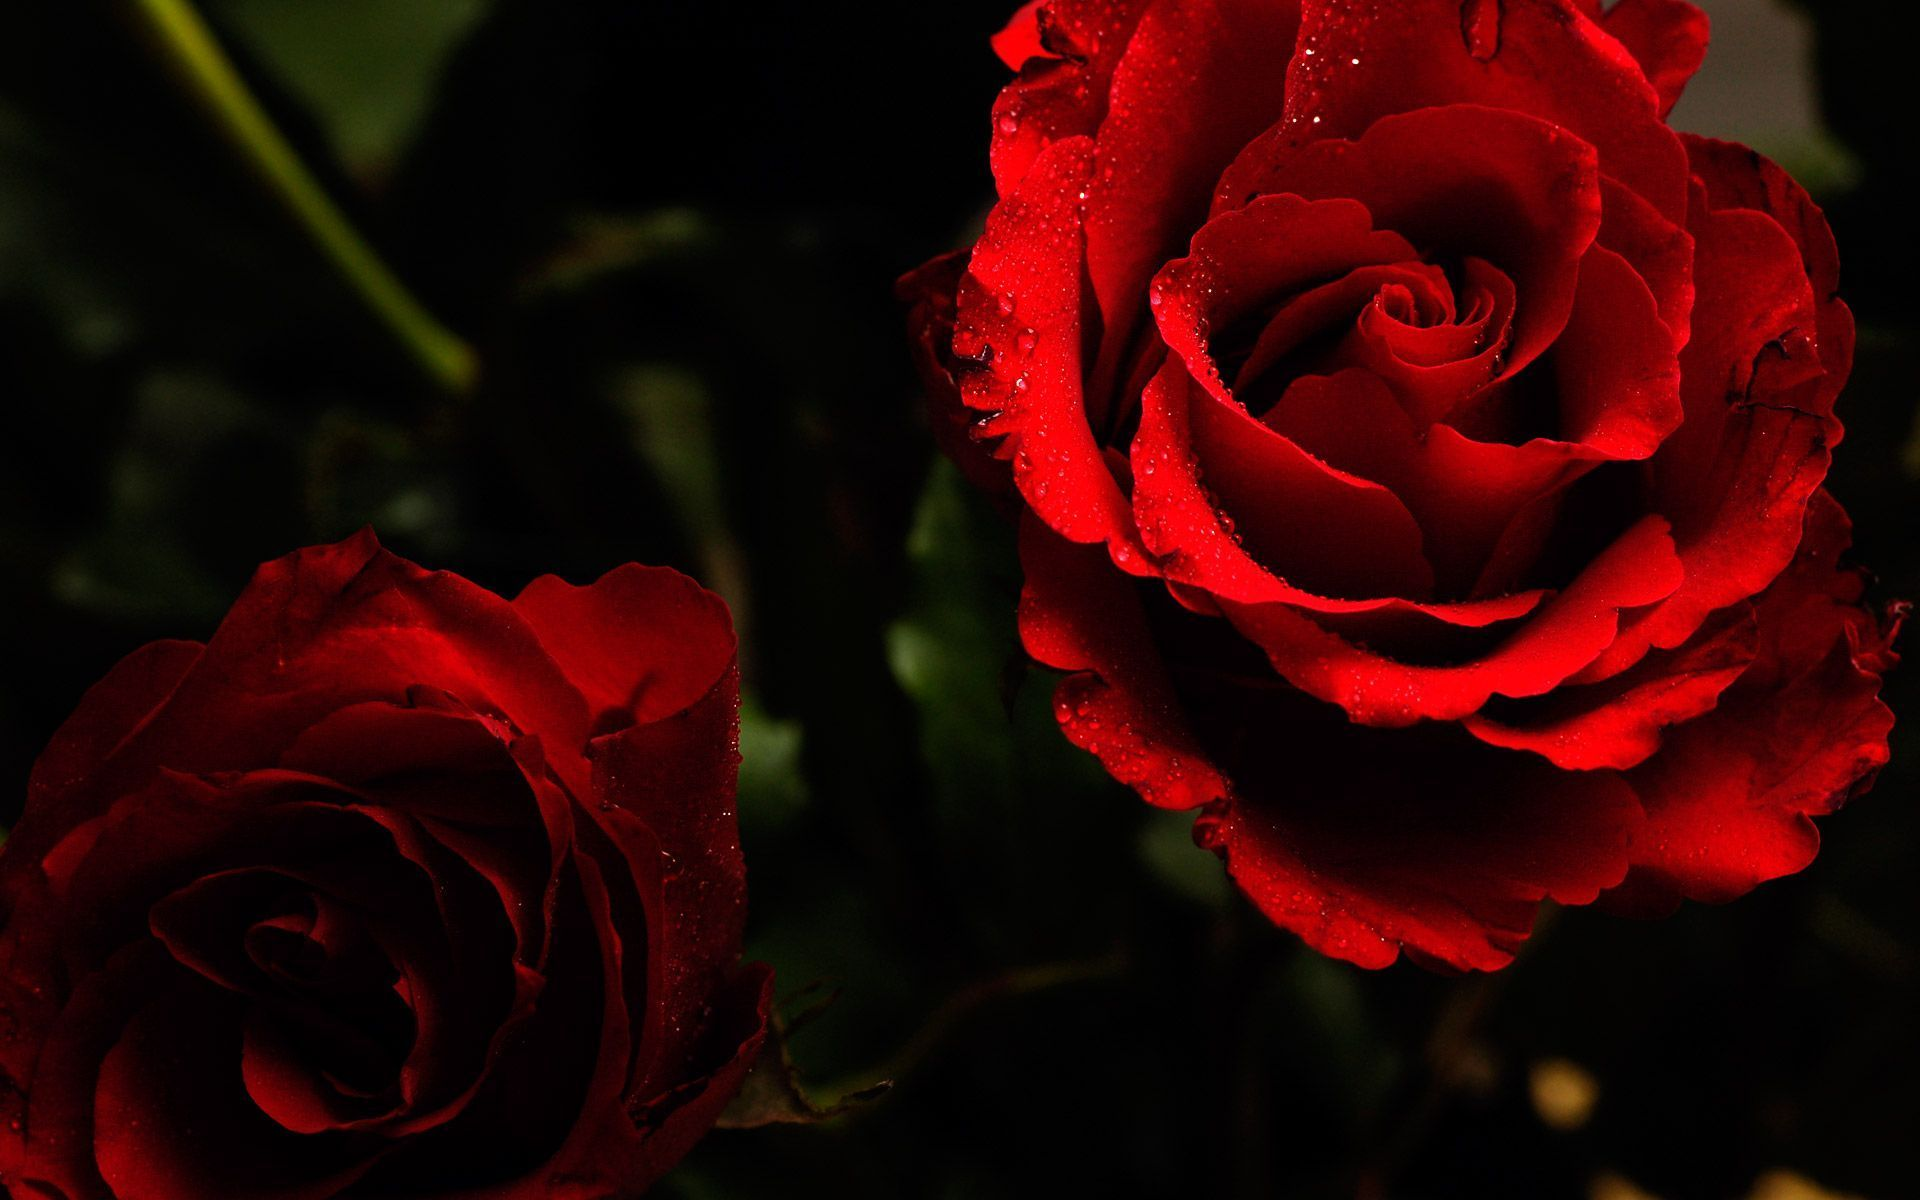 Pin By Tran Van On Um Pouco De Tudo A Little Bit Of Everything Red Roses Wallpaper Beautiful Red Roses Red Flower Wallpaper